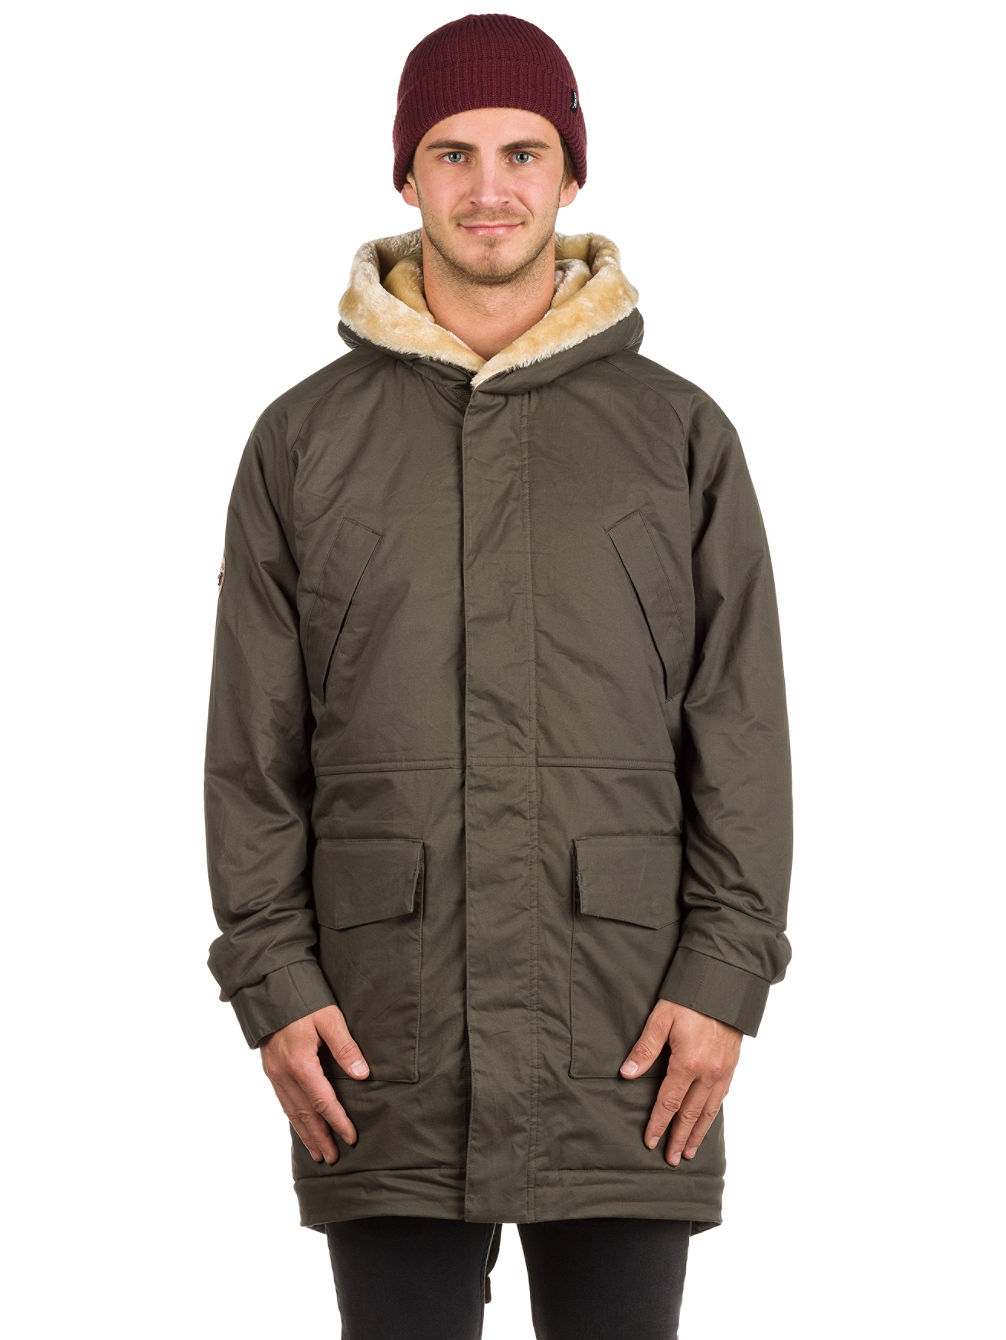 Buy Mazine Thornton Parka Jacket online at blue-tomato.com